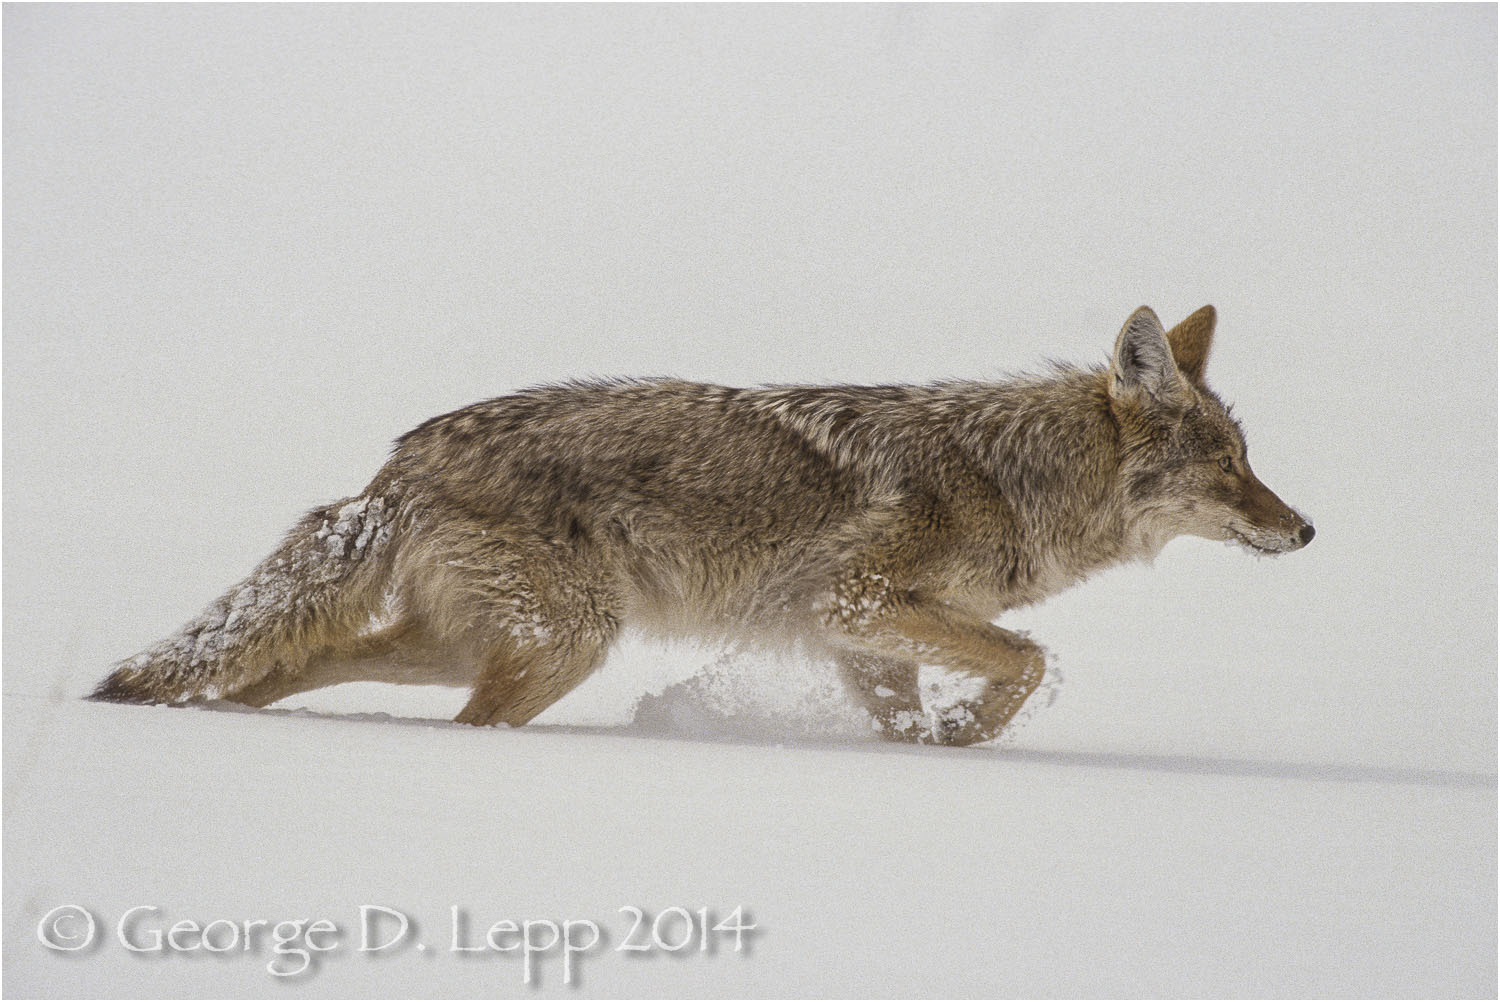 Coyote, Yellowstone N.P., Wyoming. © George D. Lepp 2014  M-CY-0012